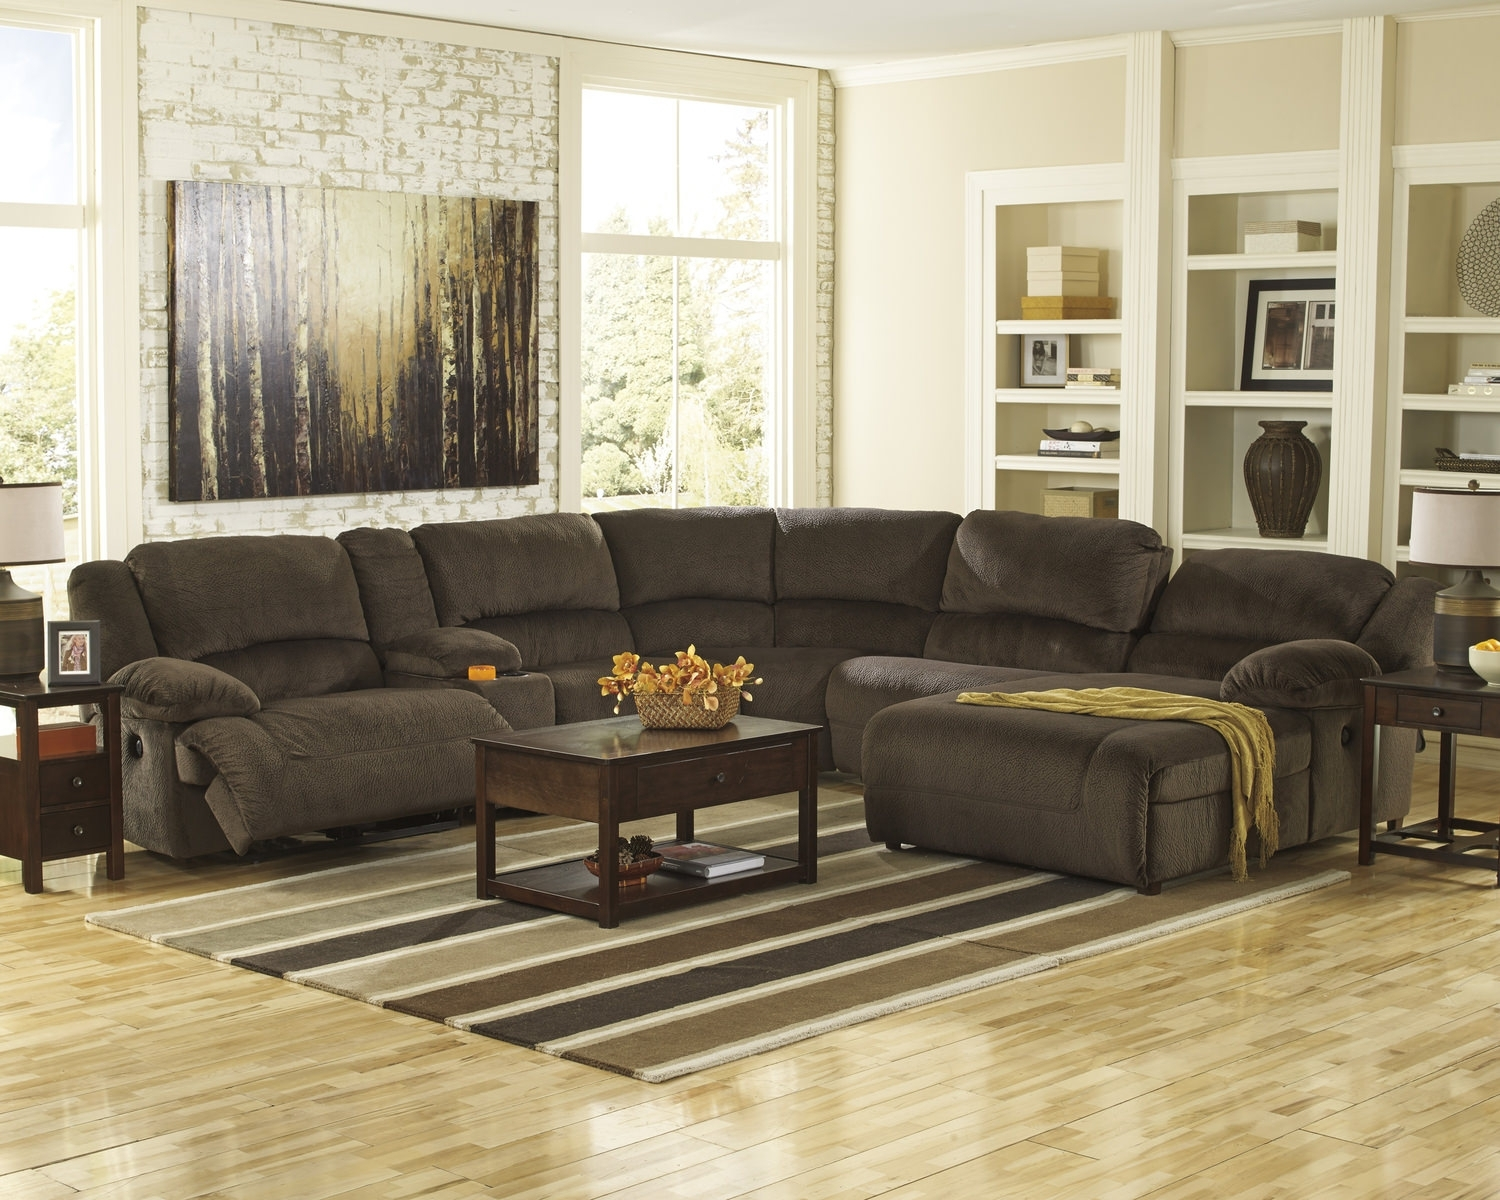 Living Room Sectionals – Leather & Fabric – Dock 86 intended for Avery 2 Piece Sectionals With Raf Armless Chaise (Image 20 of 30)